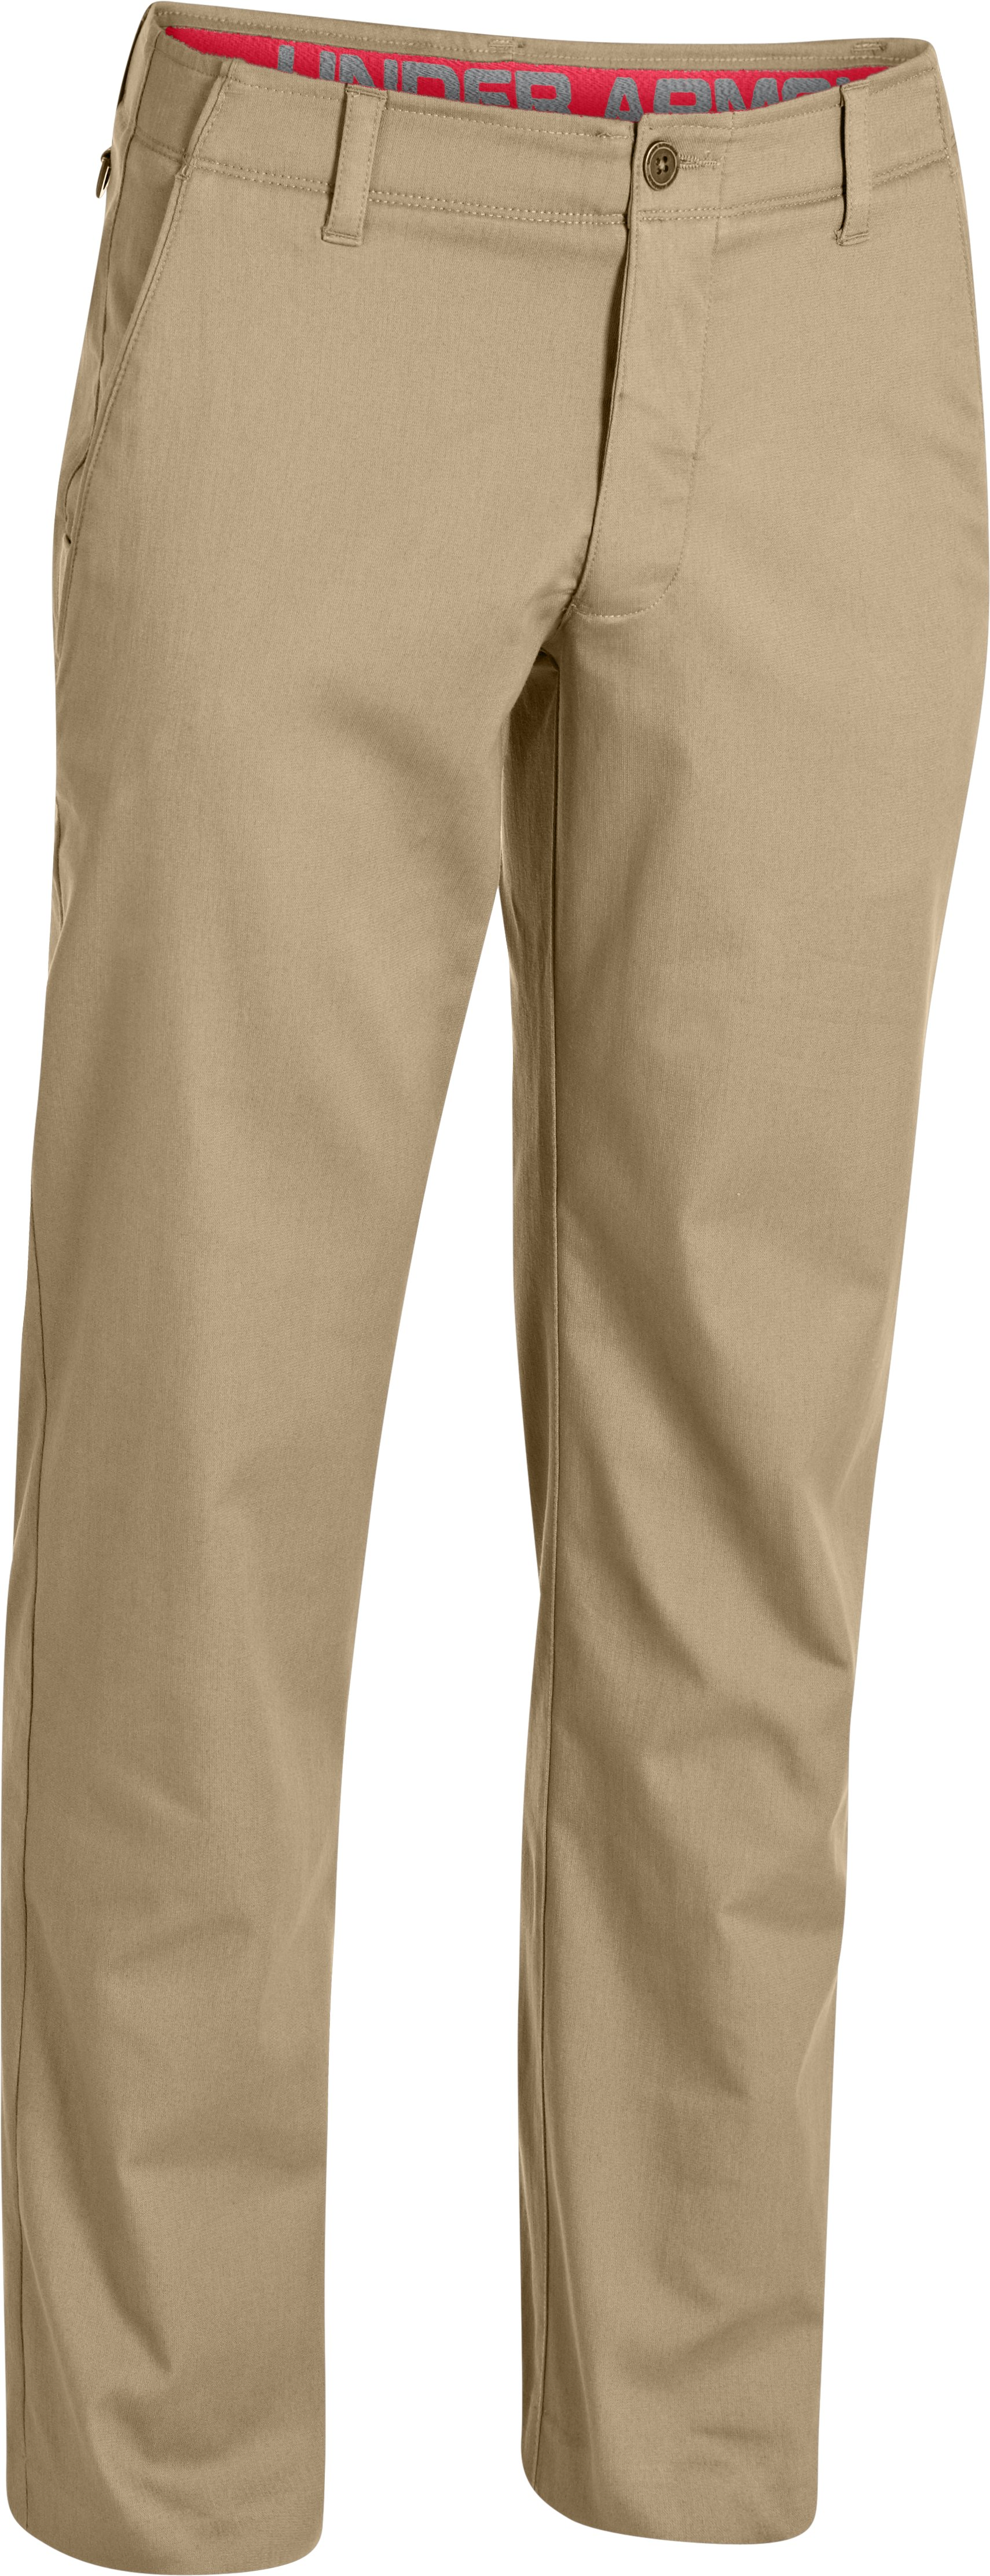 Men's UA Performance Chino – Straight Leg, Tapioca